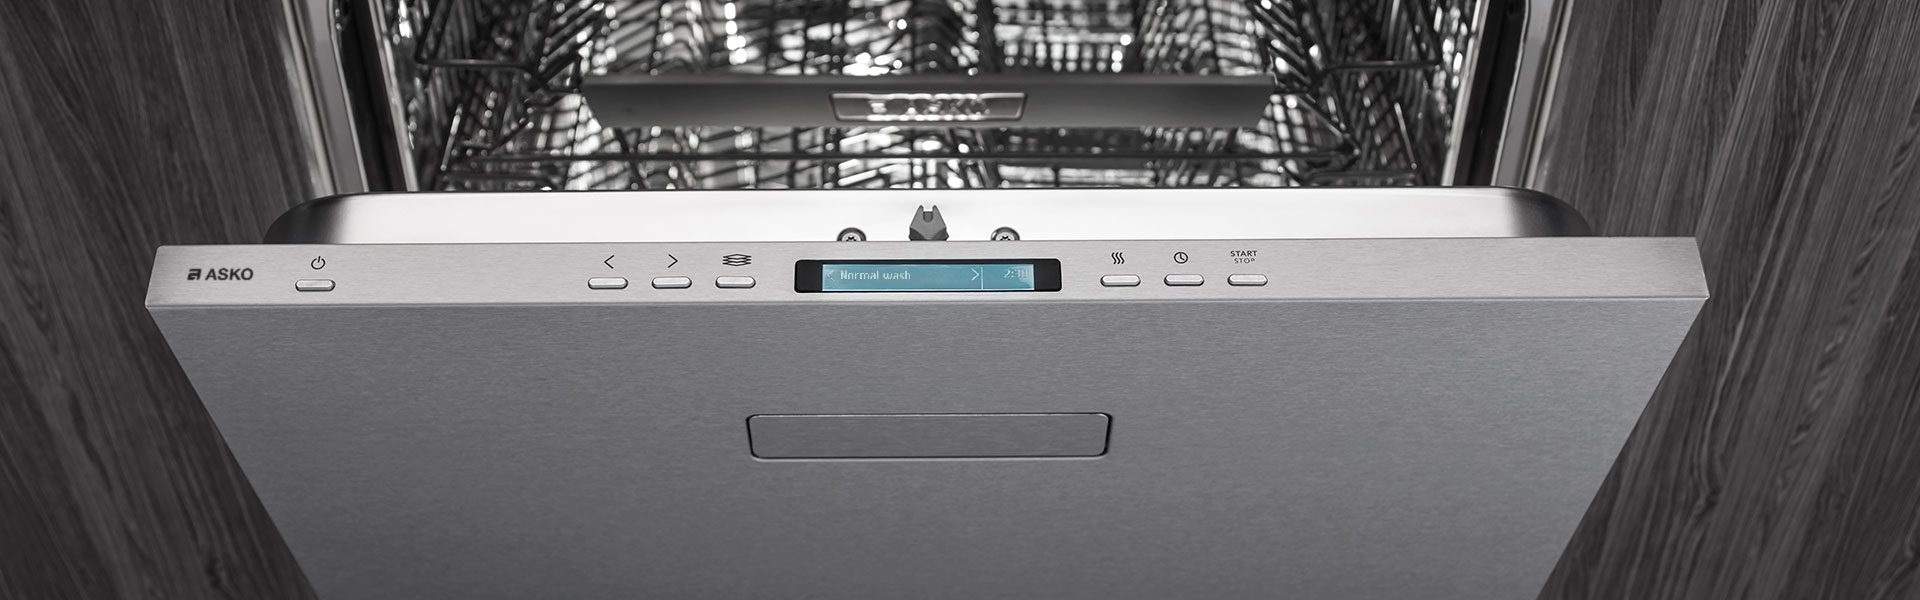 Full range of built-in dishwashers from Asko Appliances for your kitchen.